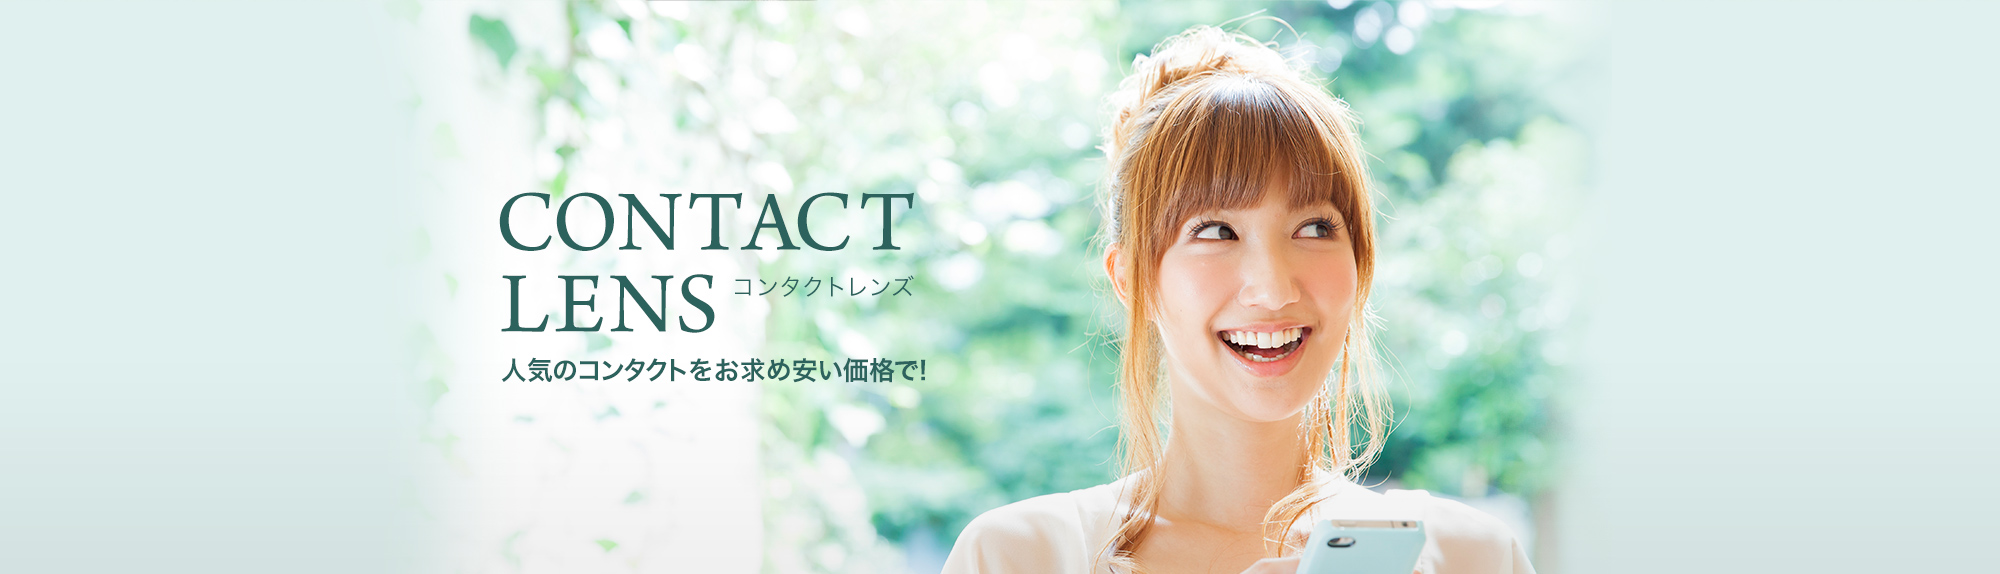 CONTACT LENS  人気のコンタクトをお求め安い価格で!